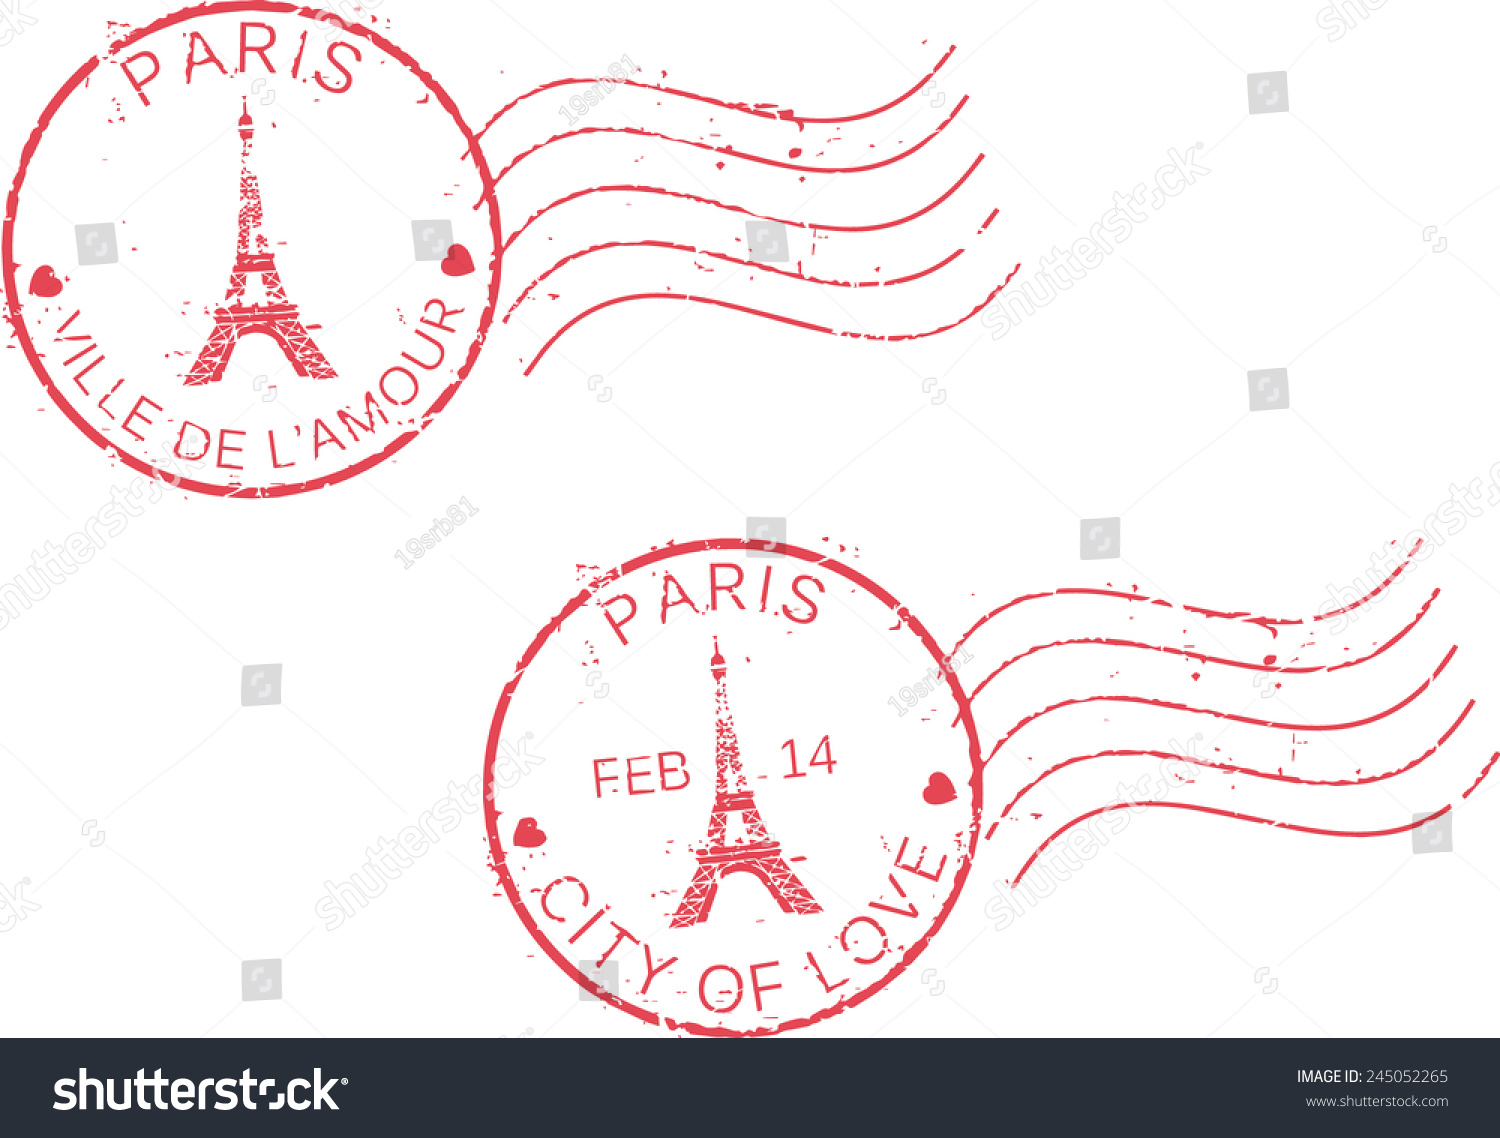 how to say city of love in french